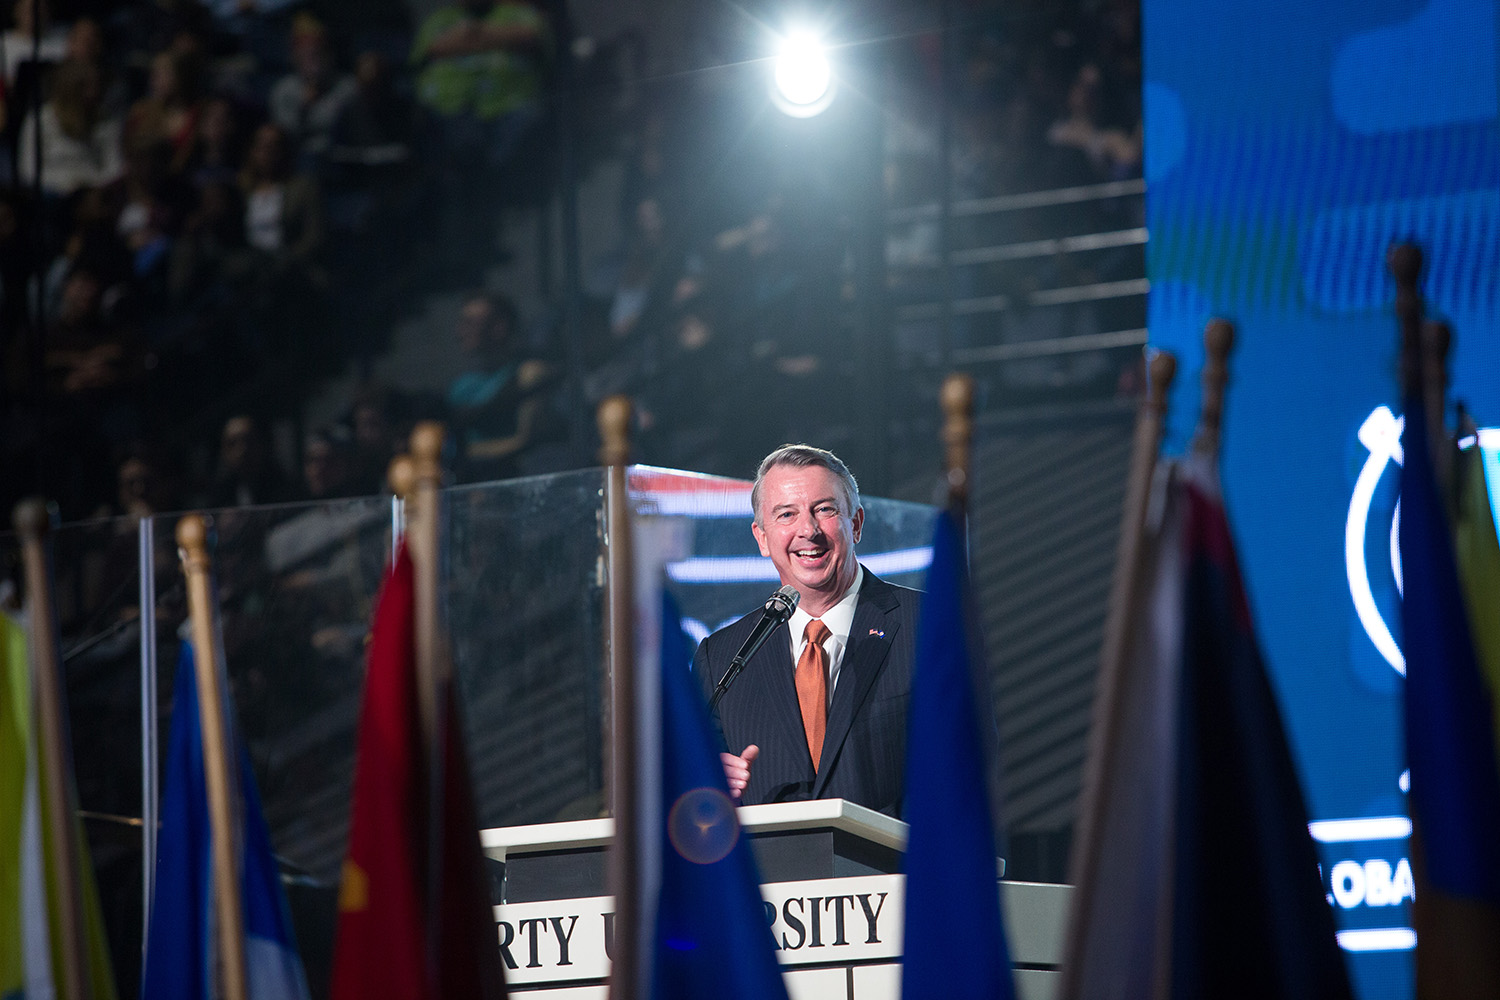 Ed Gillespie is the former chairman for the Republican National Committee and current Virginia gubernatorial candidate.